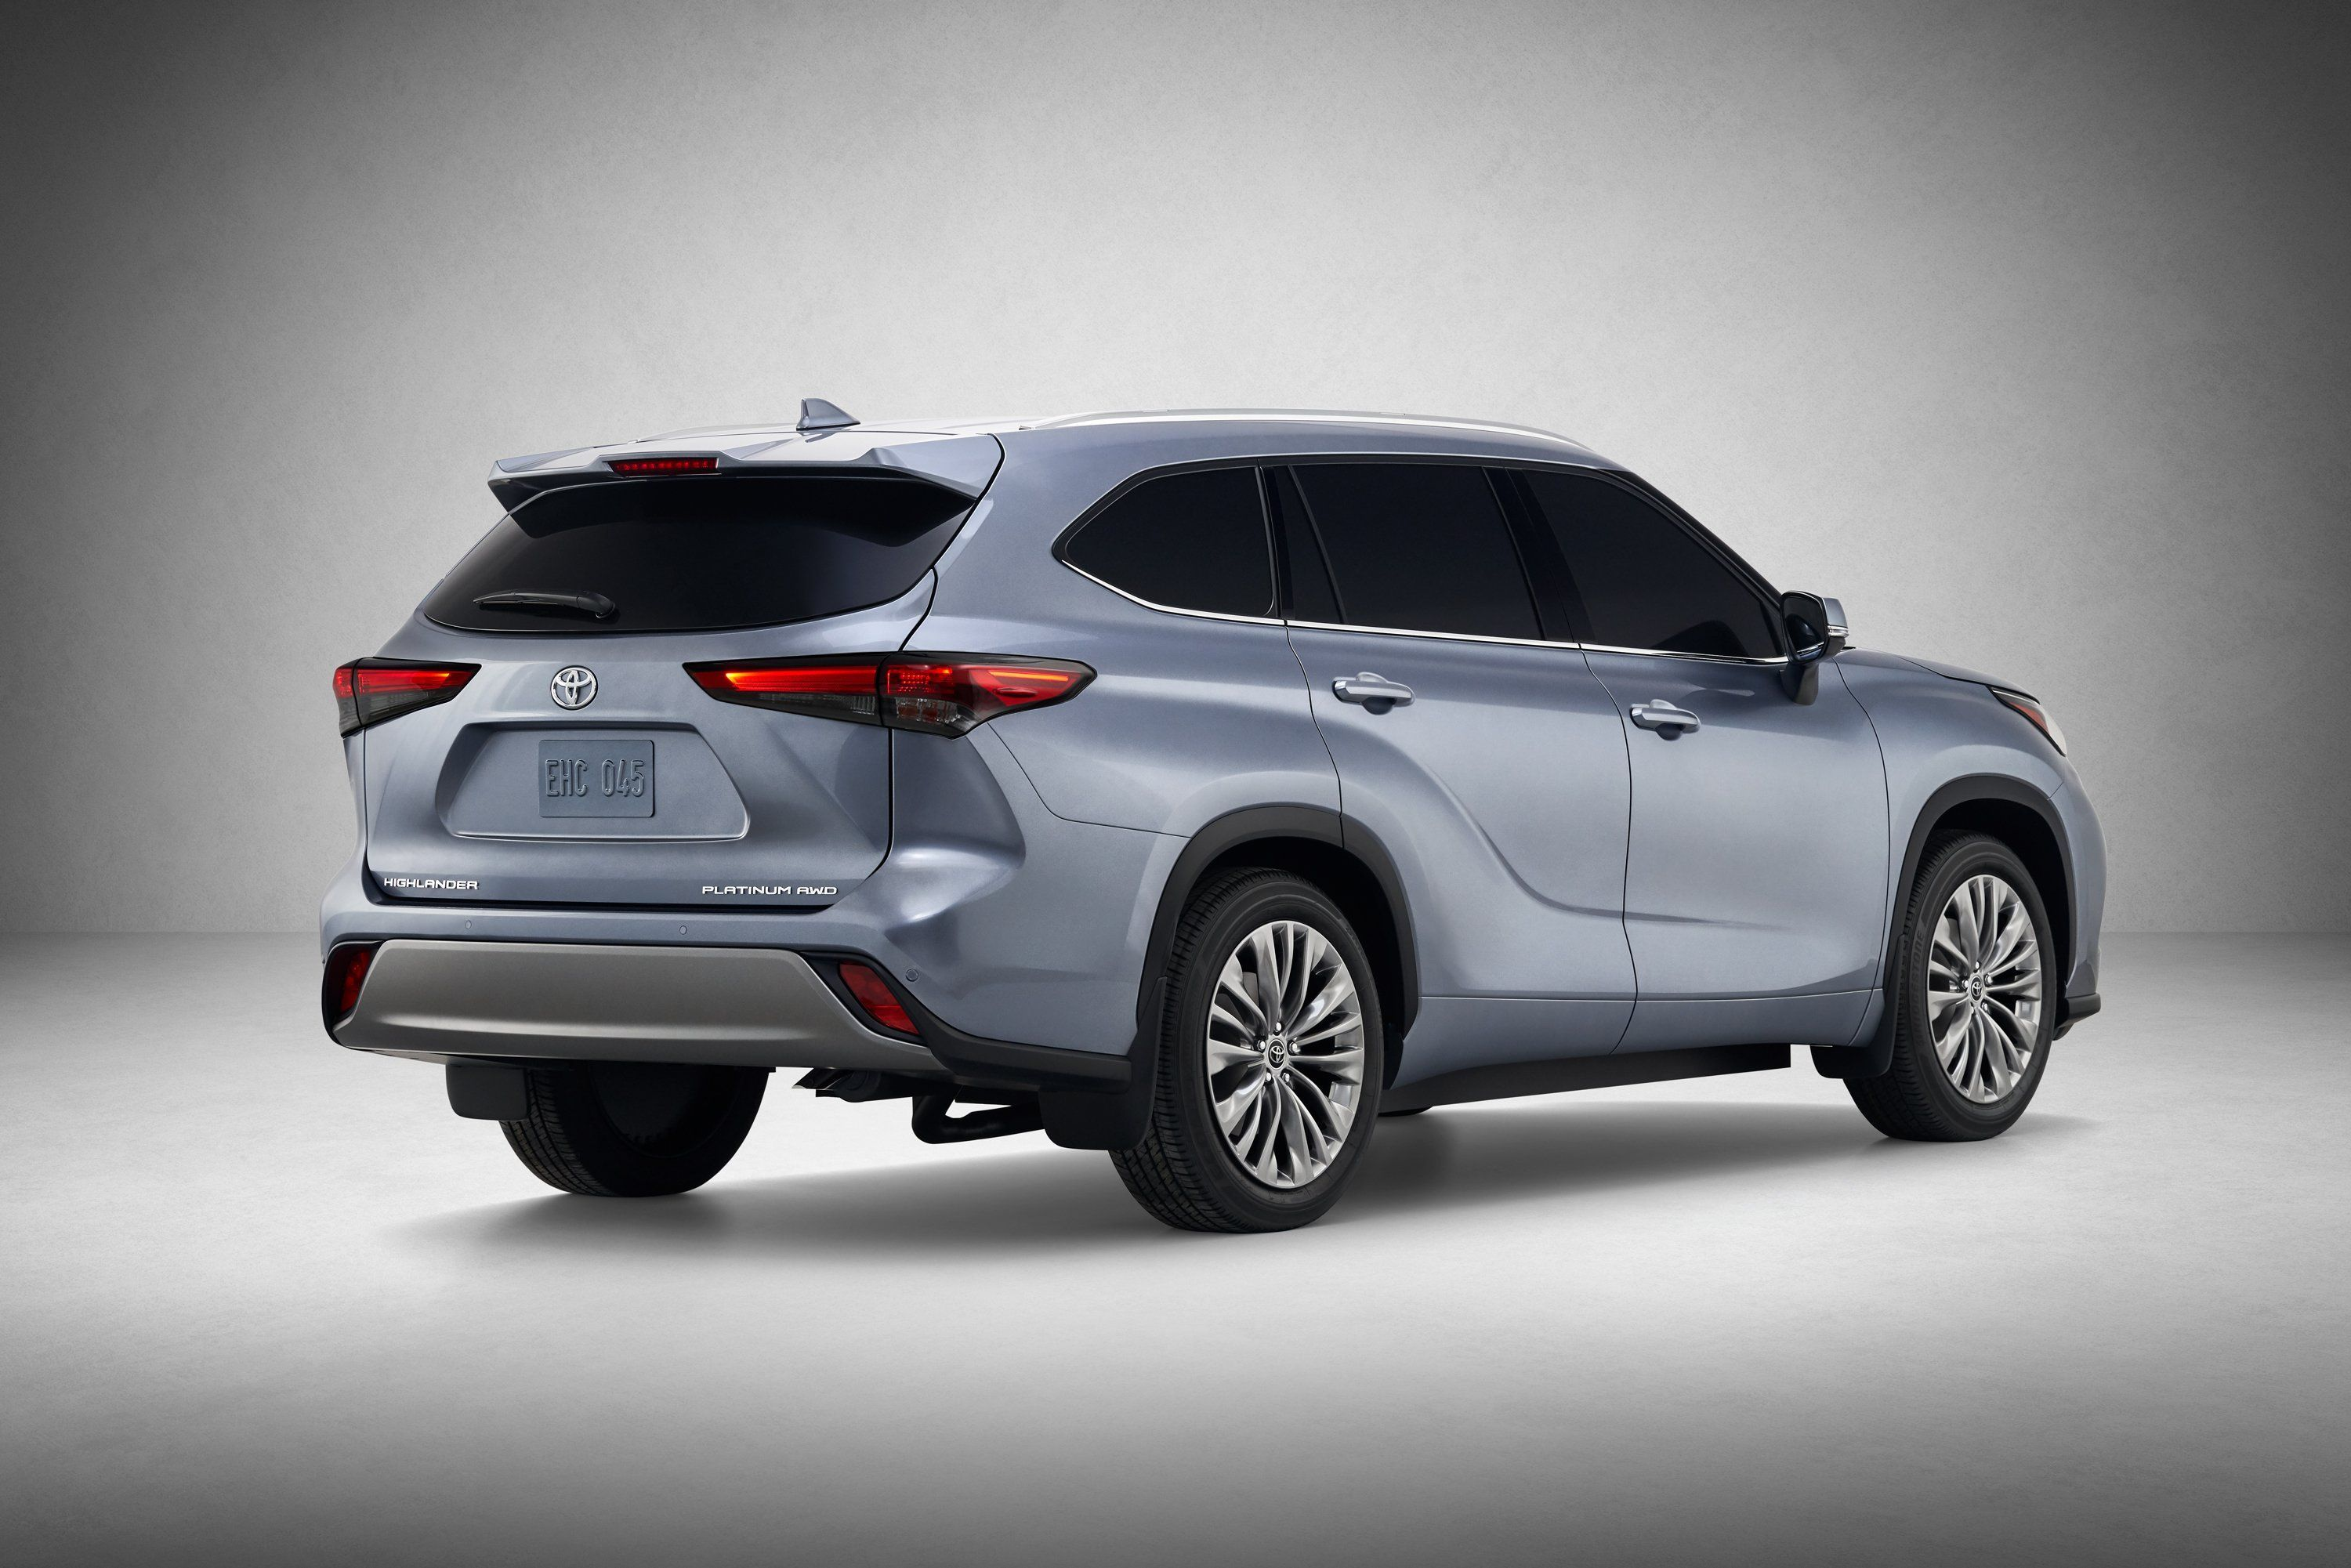 2020 Toyota Highlander Toyota Highlander Latest Information About Toyota Cars Release Date Redesign A Toyota Suv Toyota Highlander Toyota Highlander Hybrid